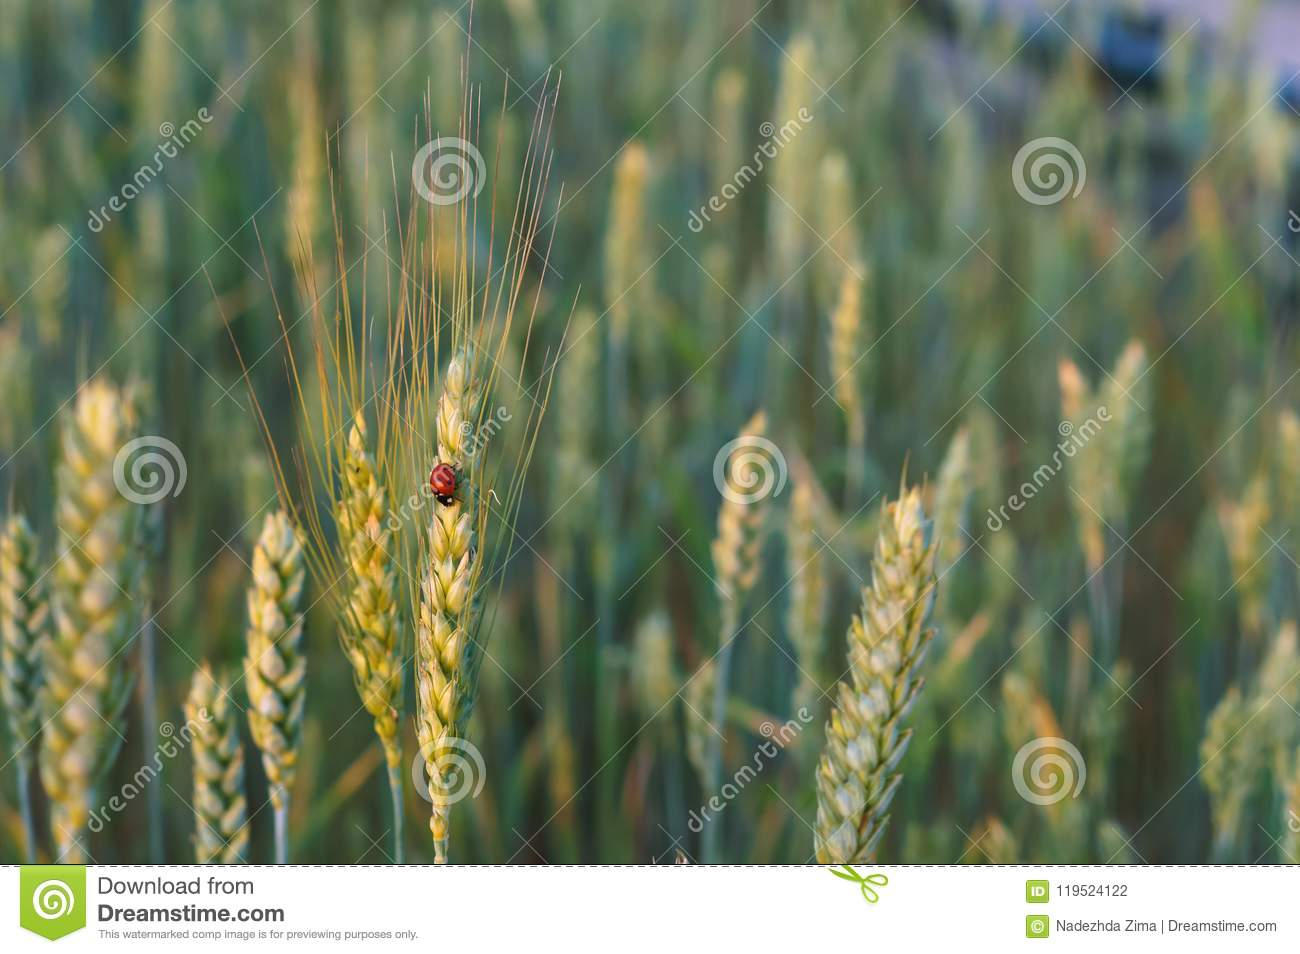 Wheat Ears In The Field Wheat Ears In The Sun Stock Photo Image